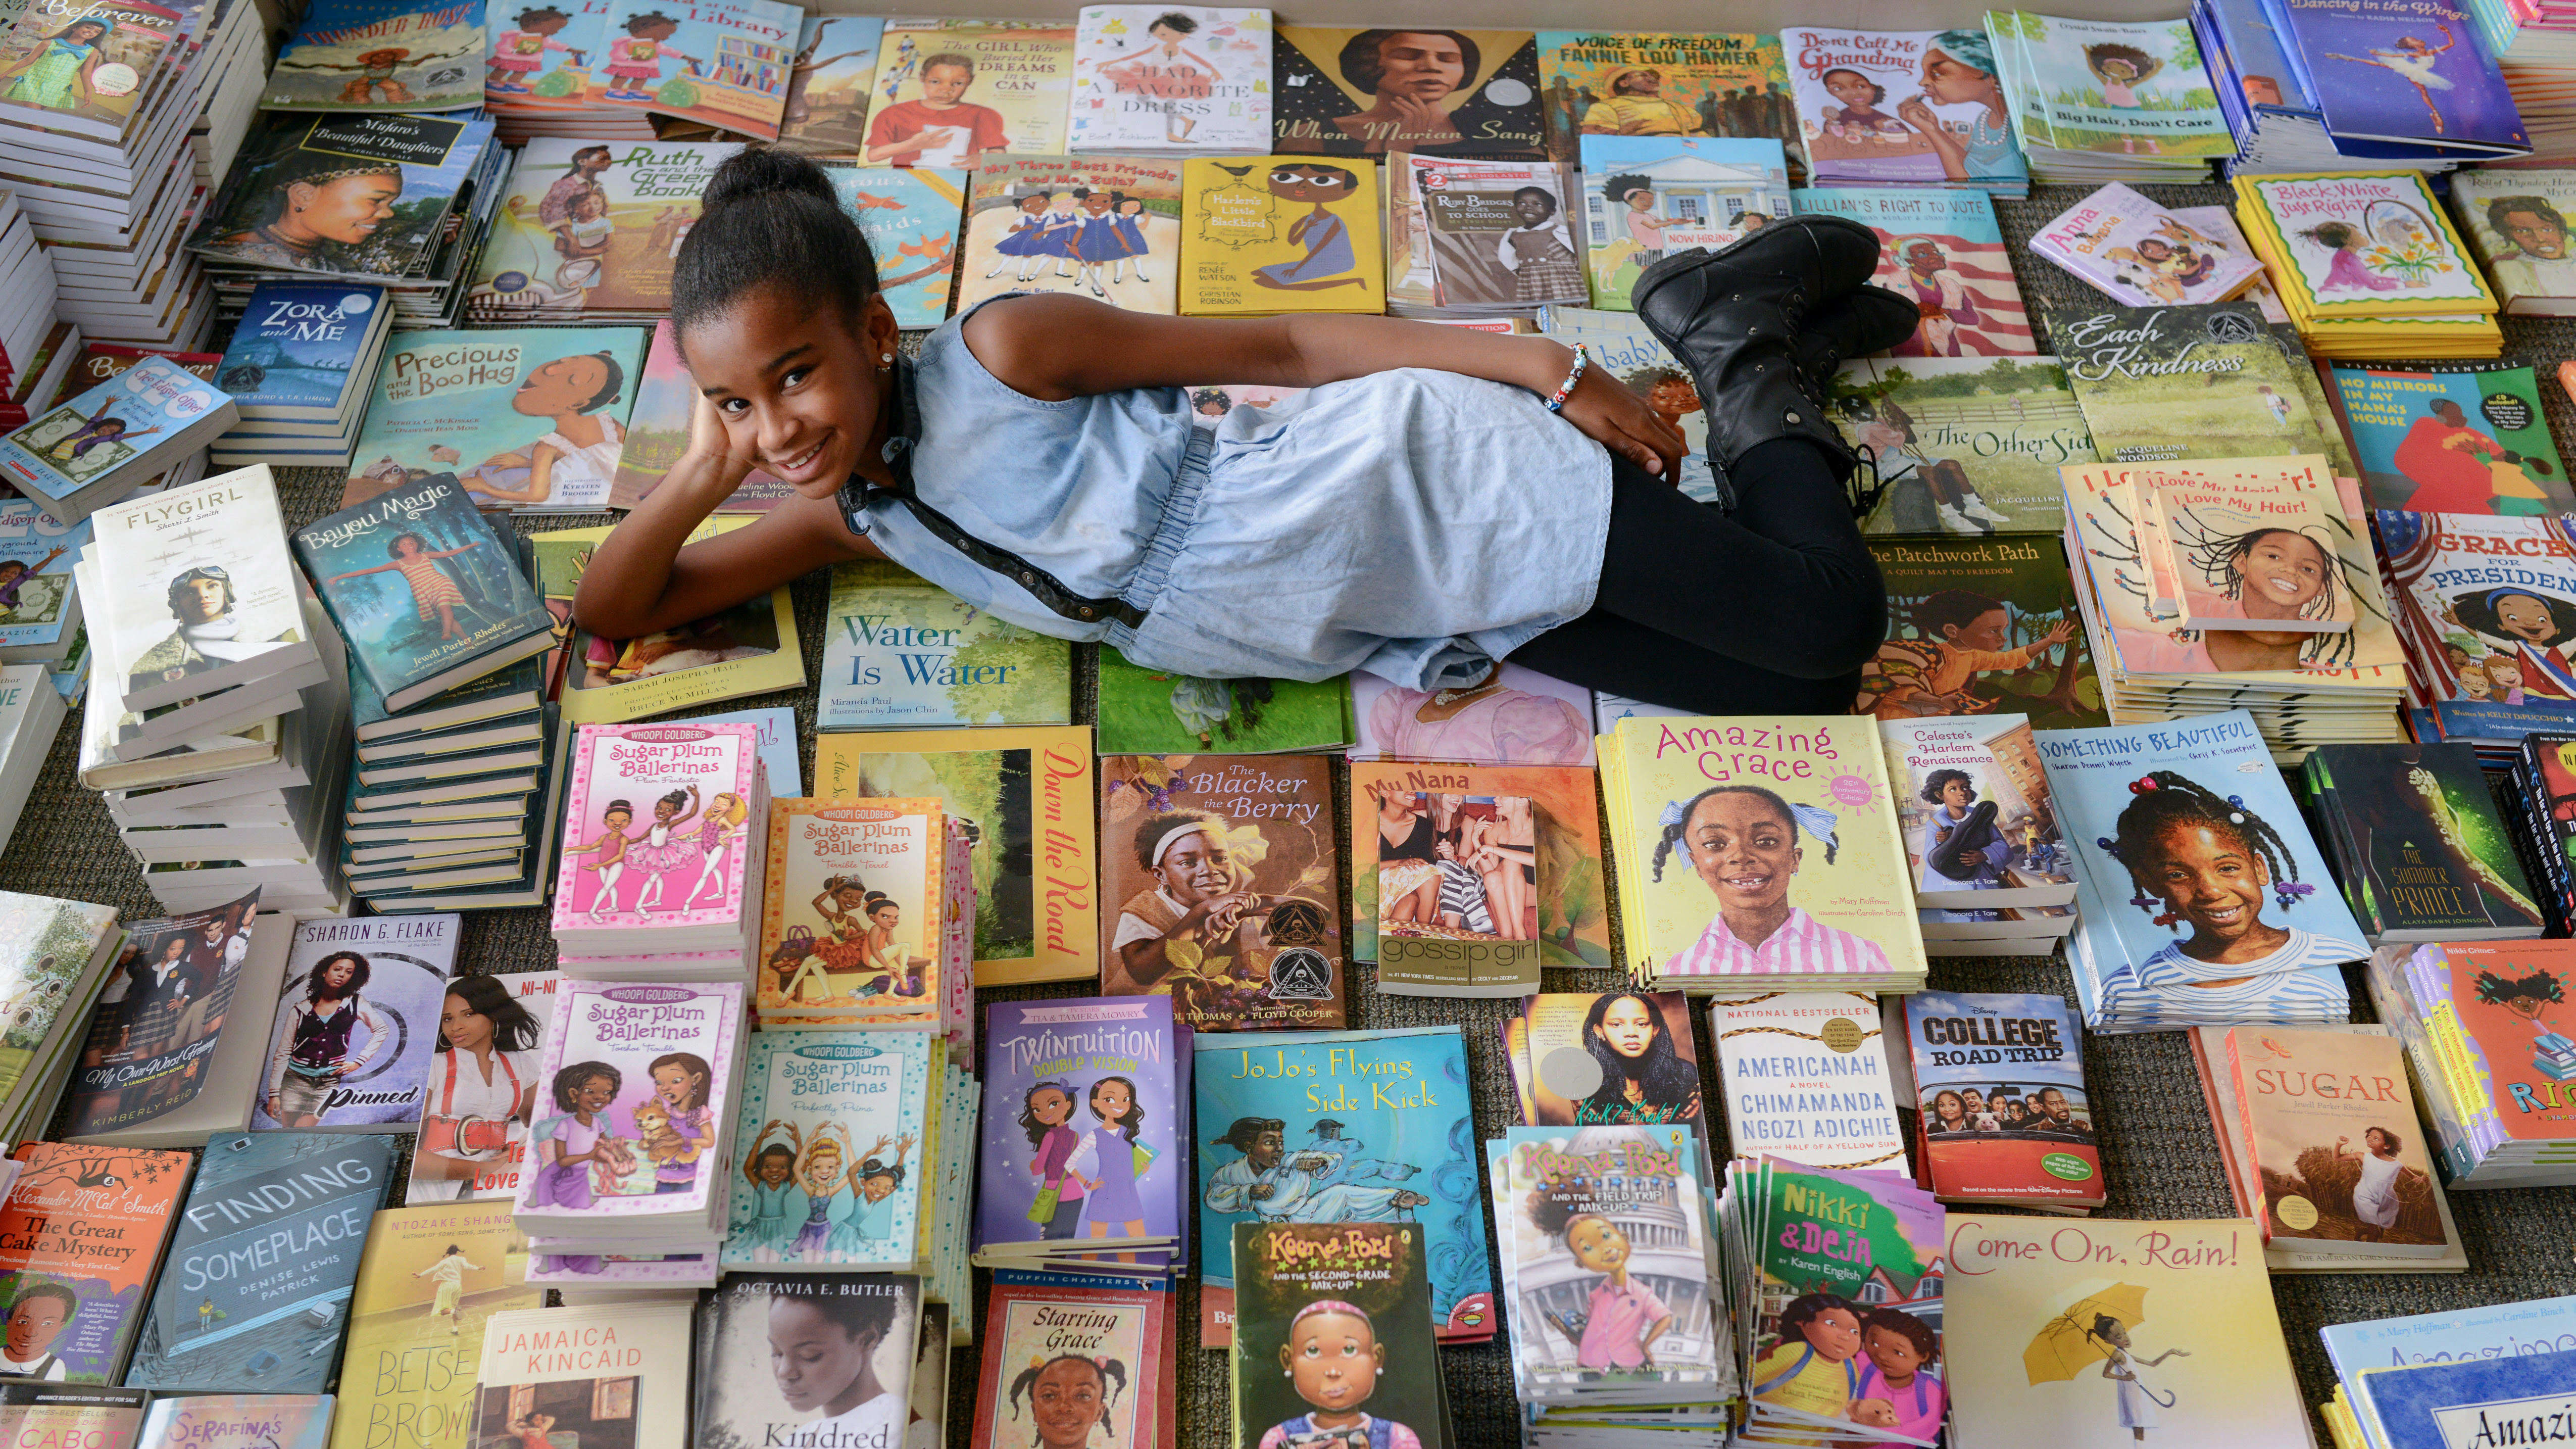 Speaking, did black girl collection remarkable